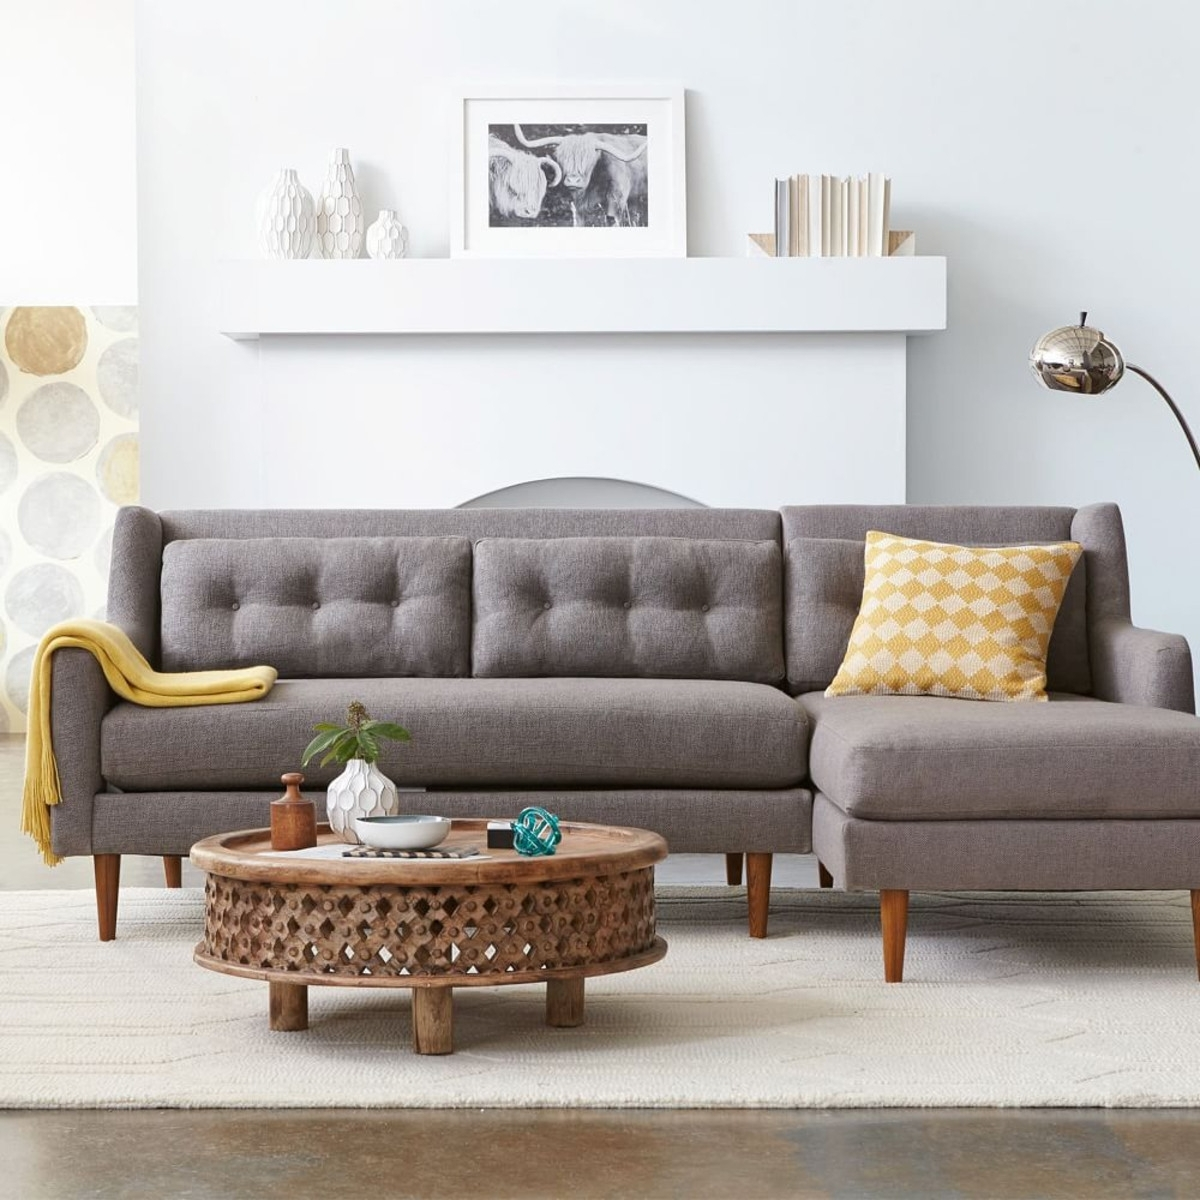 Is West Elm Furniture Good Quality: 10 Best West Elm Sectional Sofas